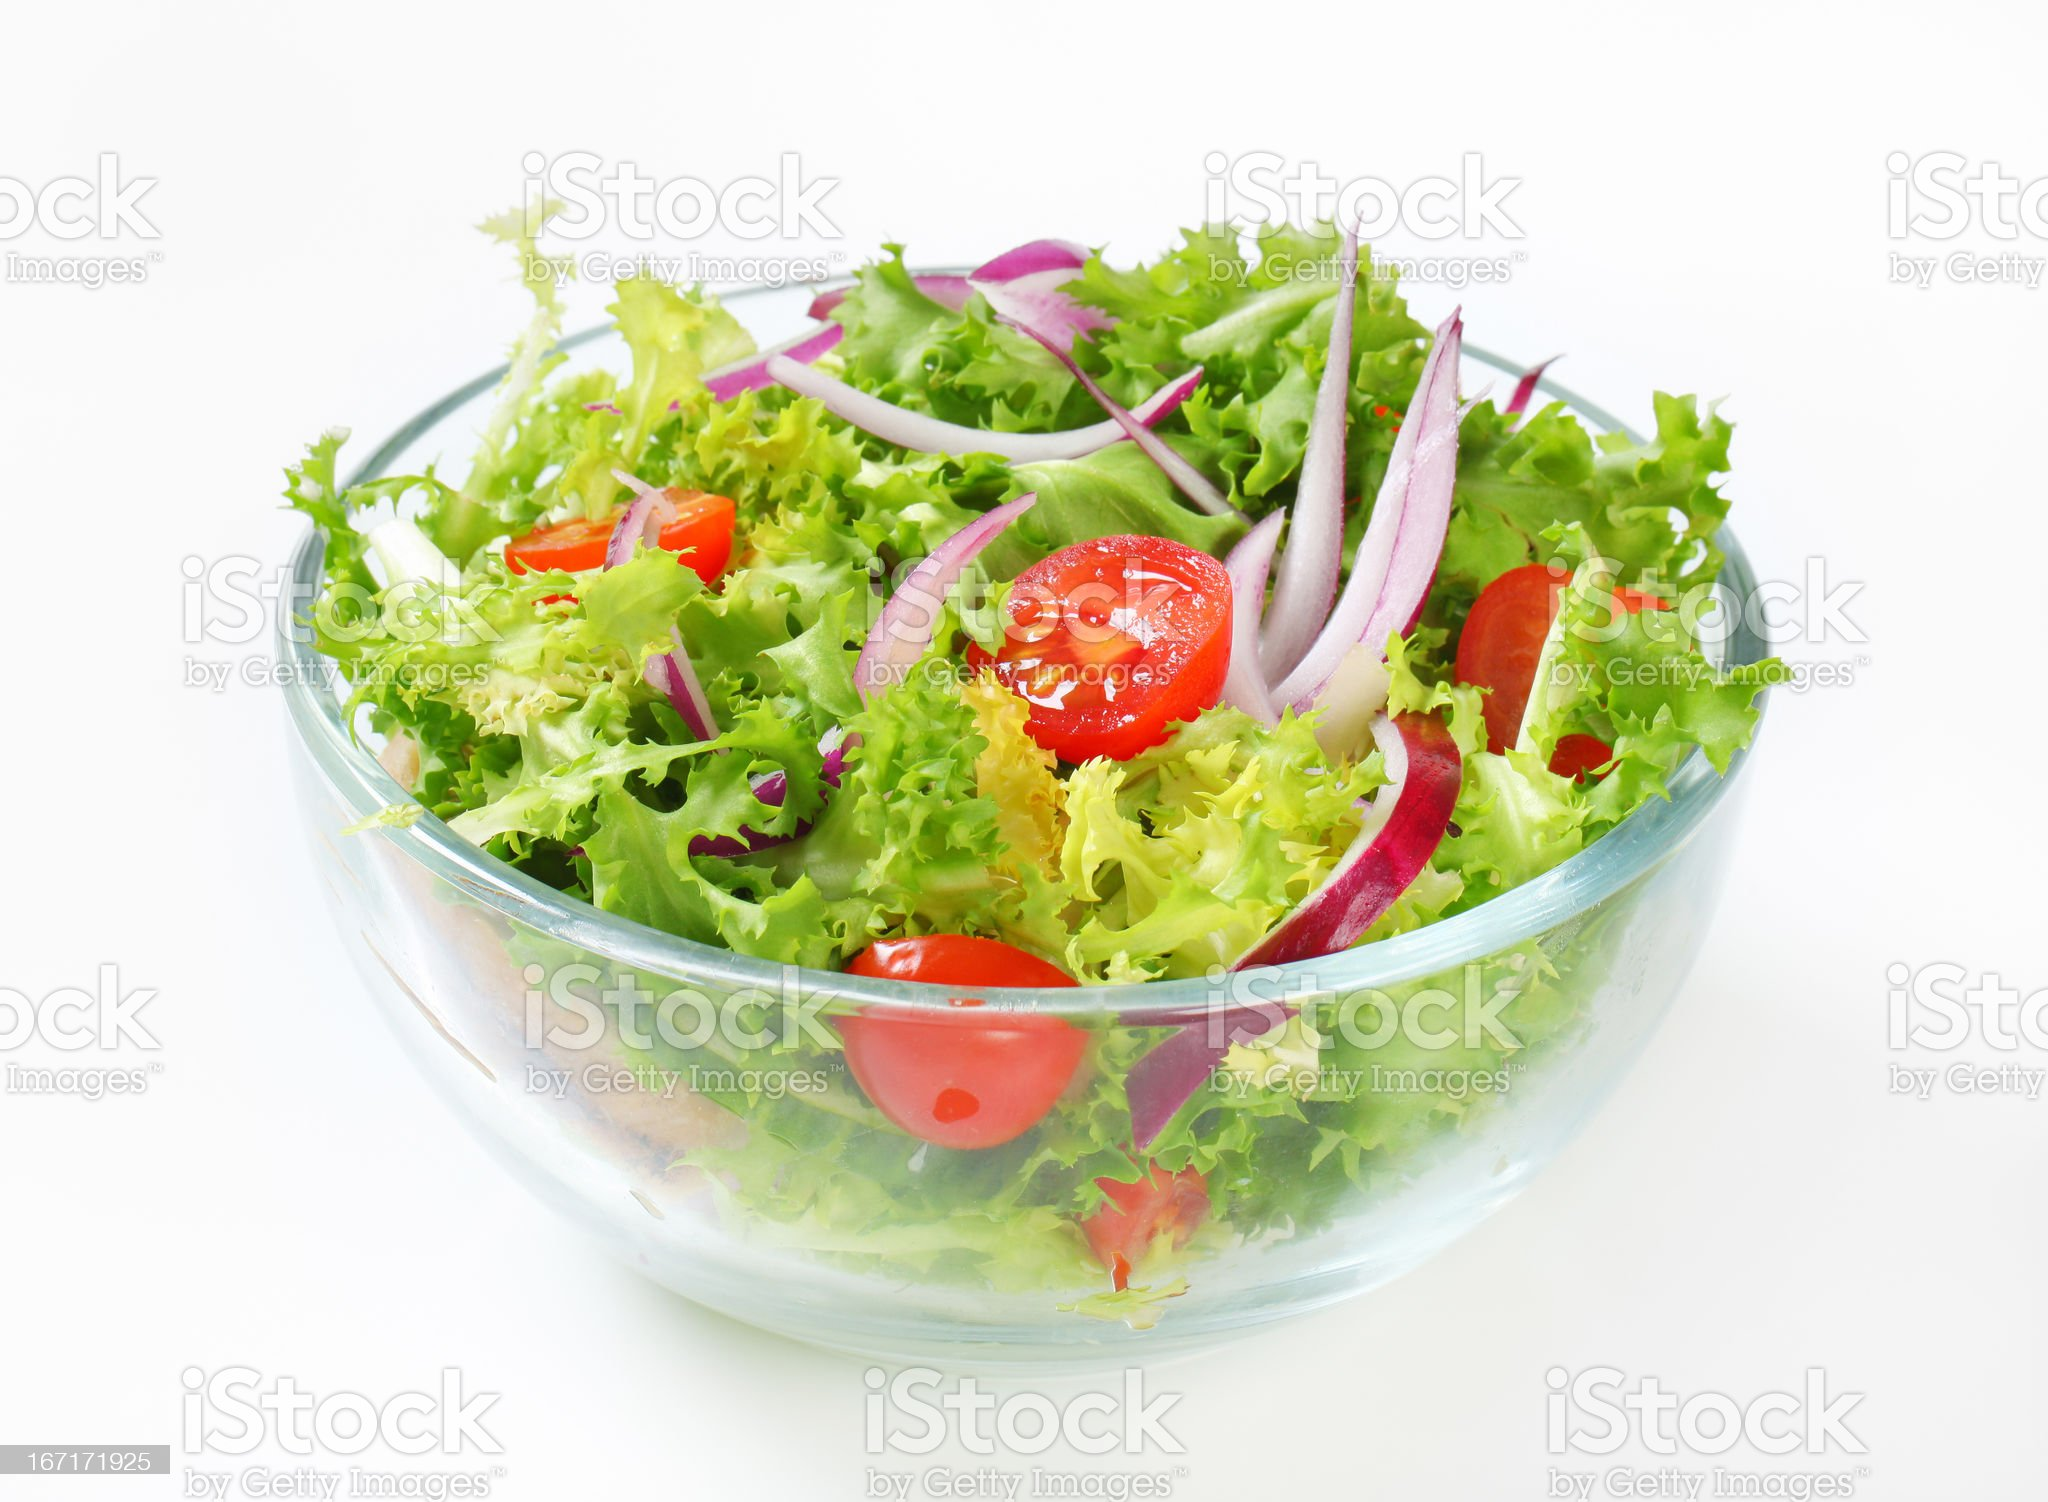 vegetable salad royalty-free stock photo